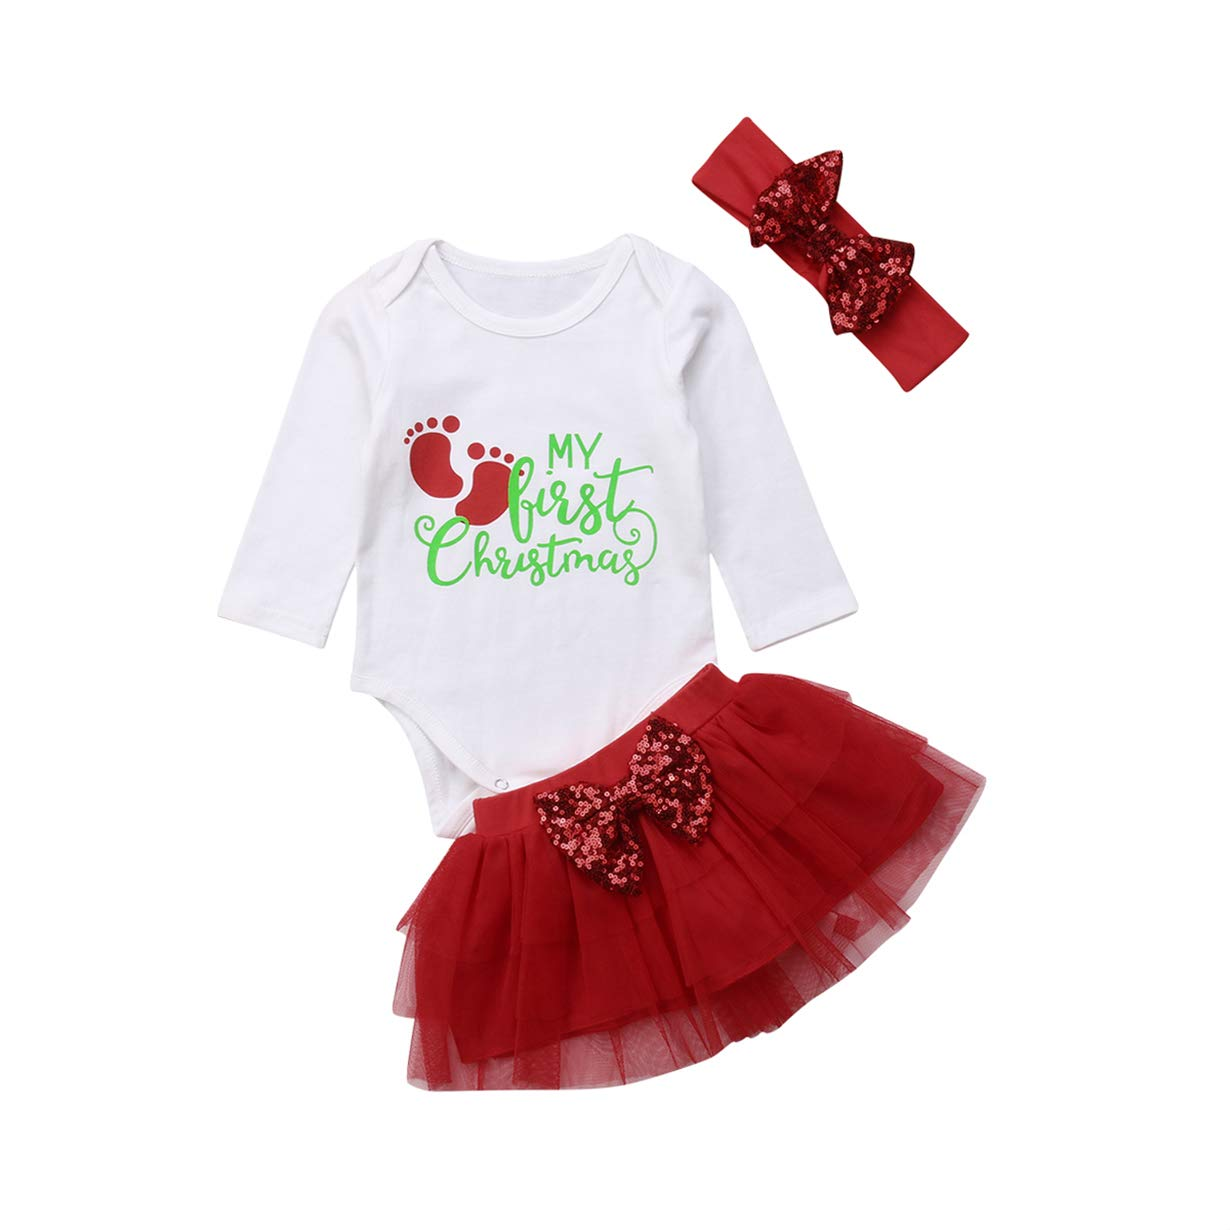 GoodFilling Newborn Infant Baby Girl My First Christmas Print Romper Red Tutu Skirt Headband 3 Pcs Outfits